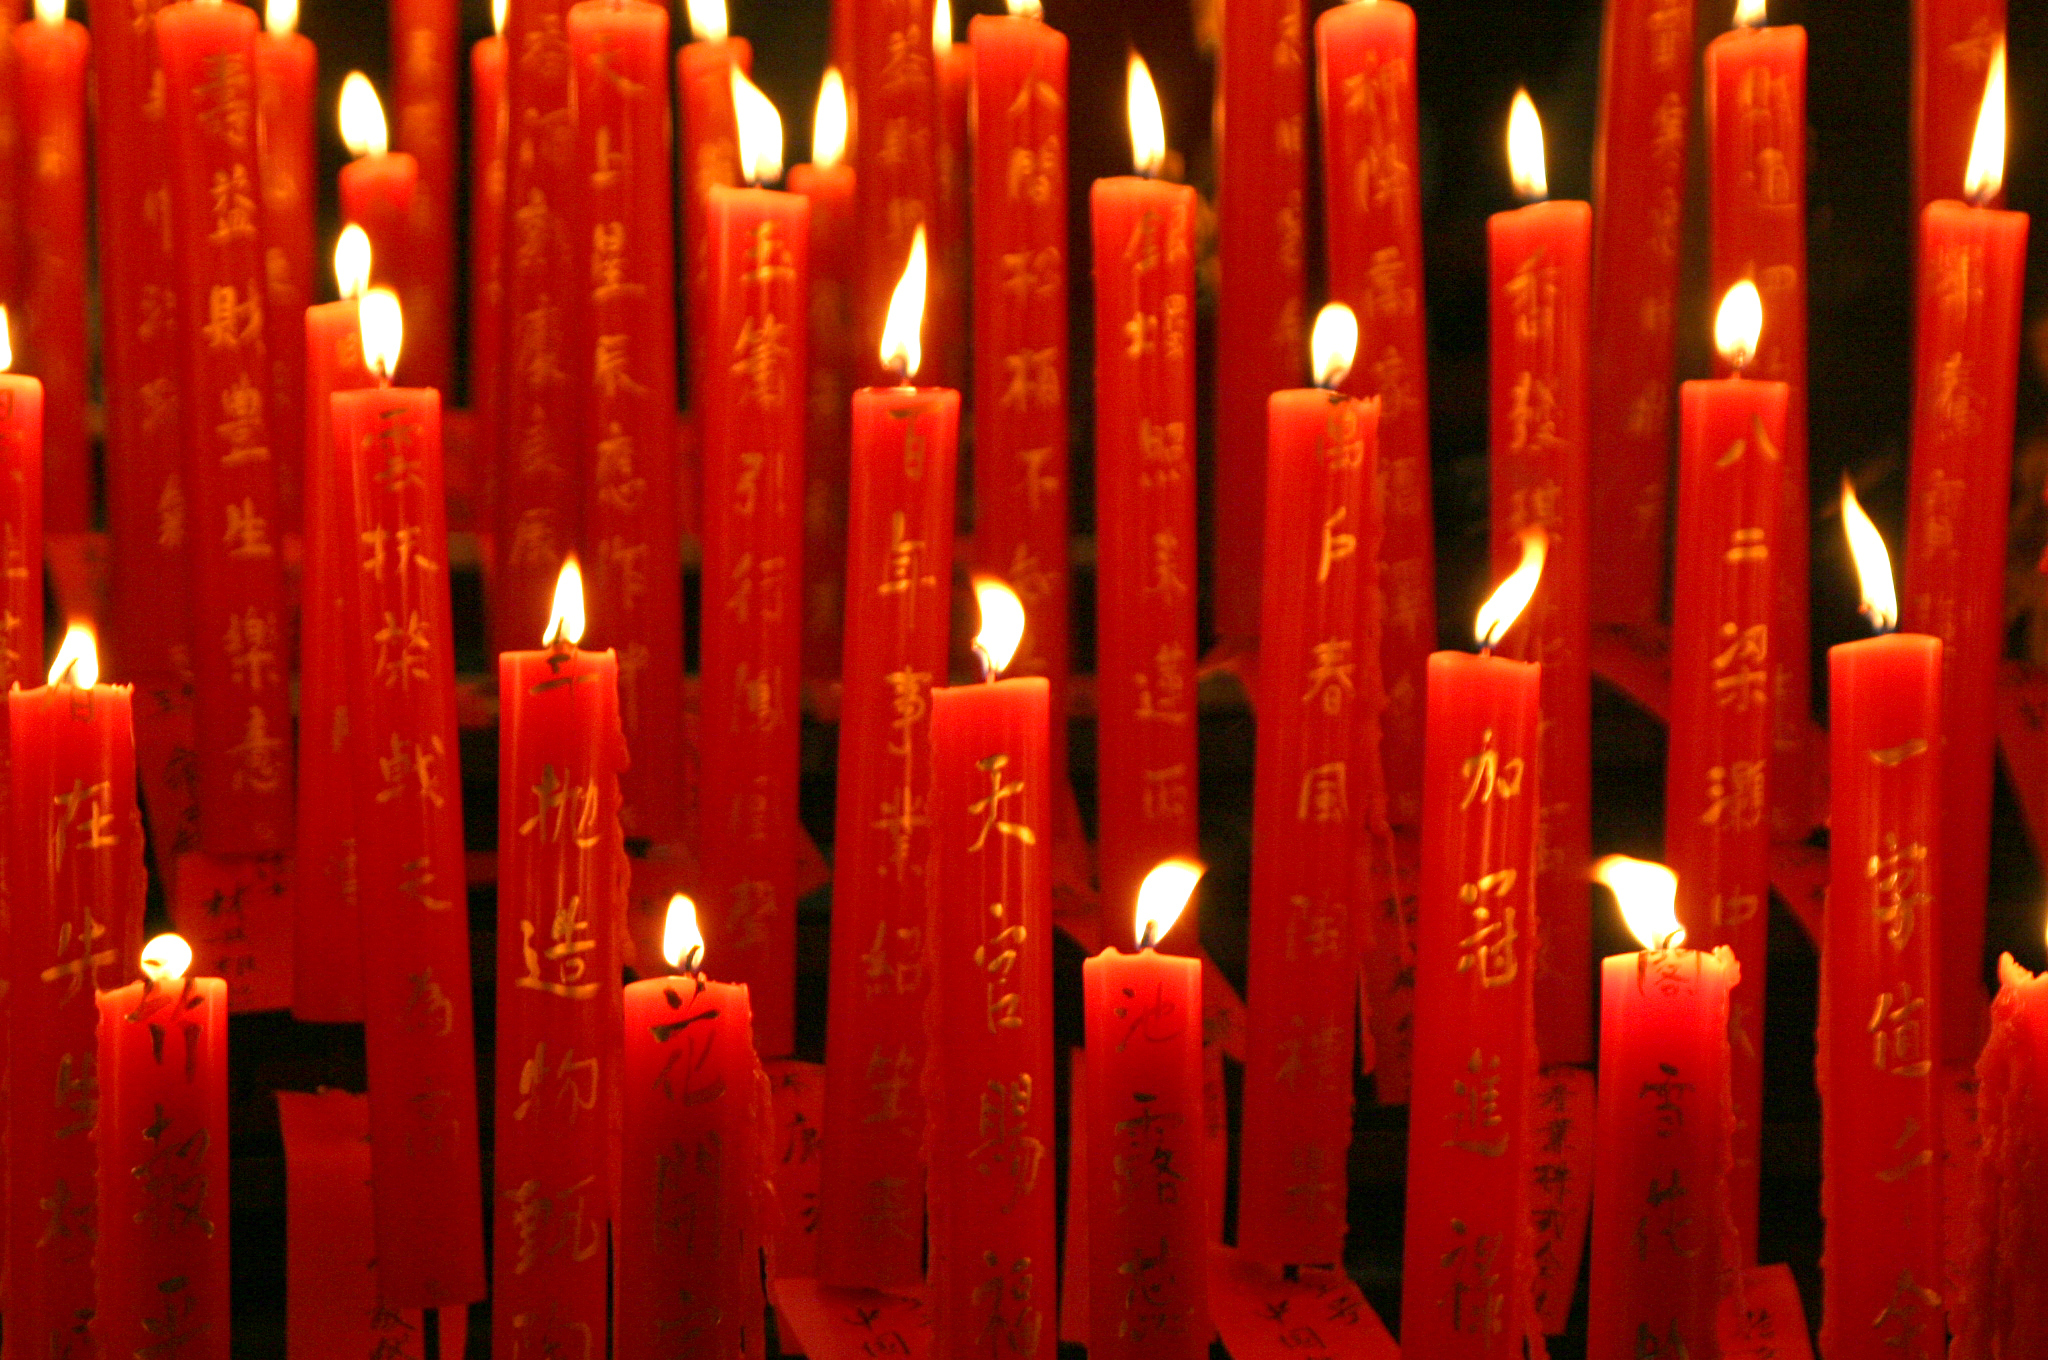 Red-Candles1.jpg